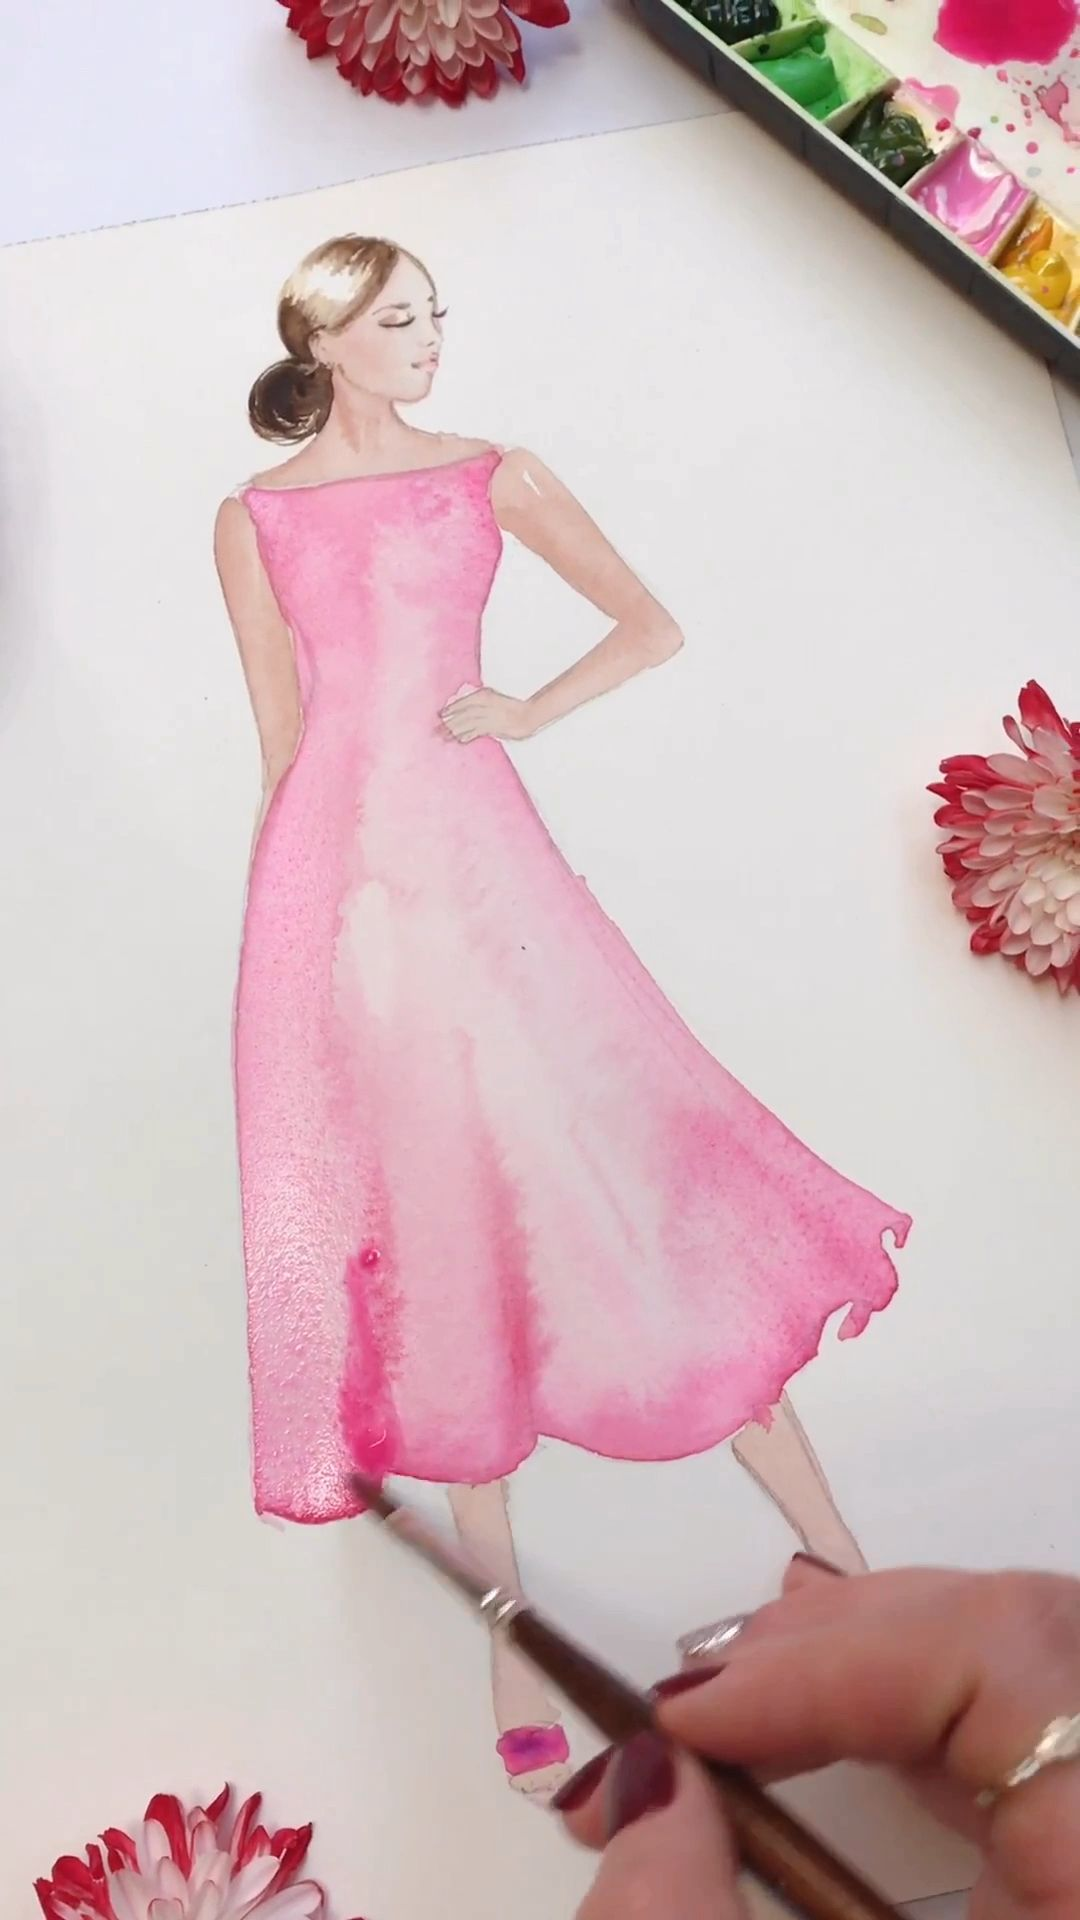 Photo of Fashion illustration, painting with watercolor